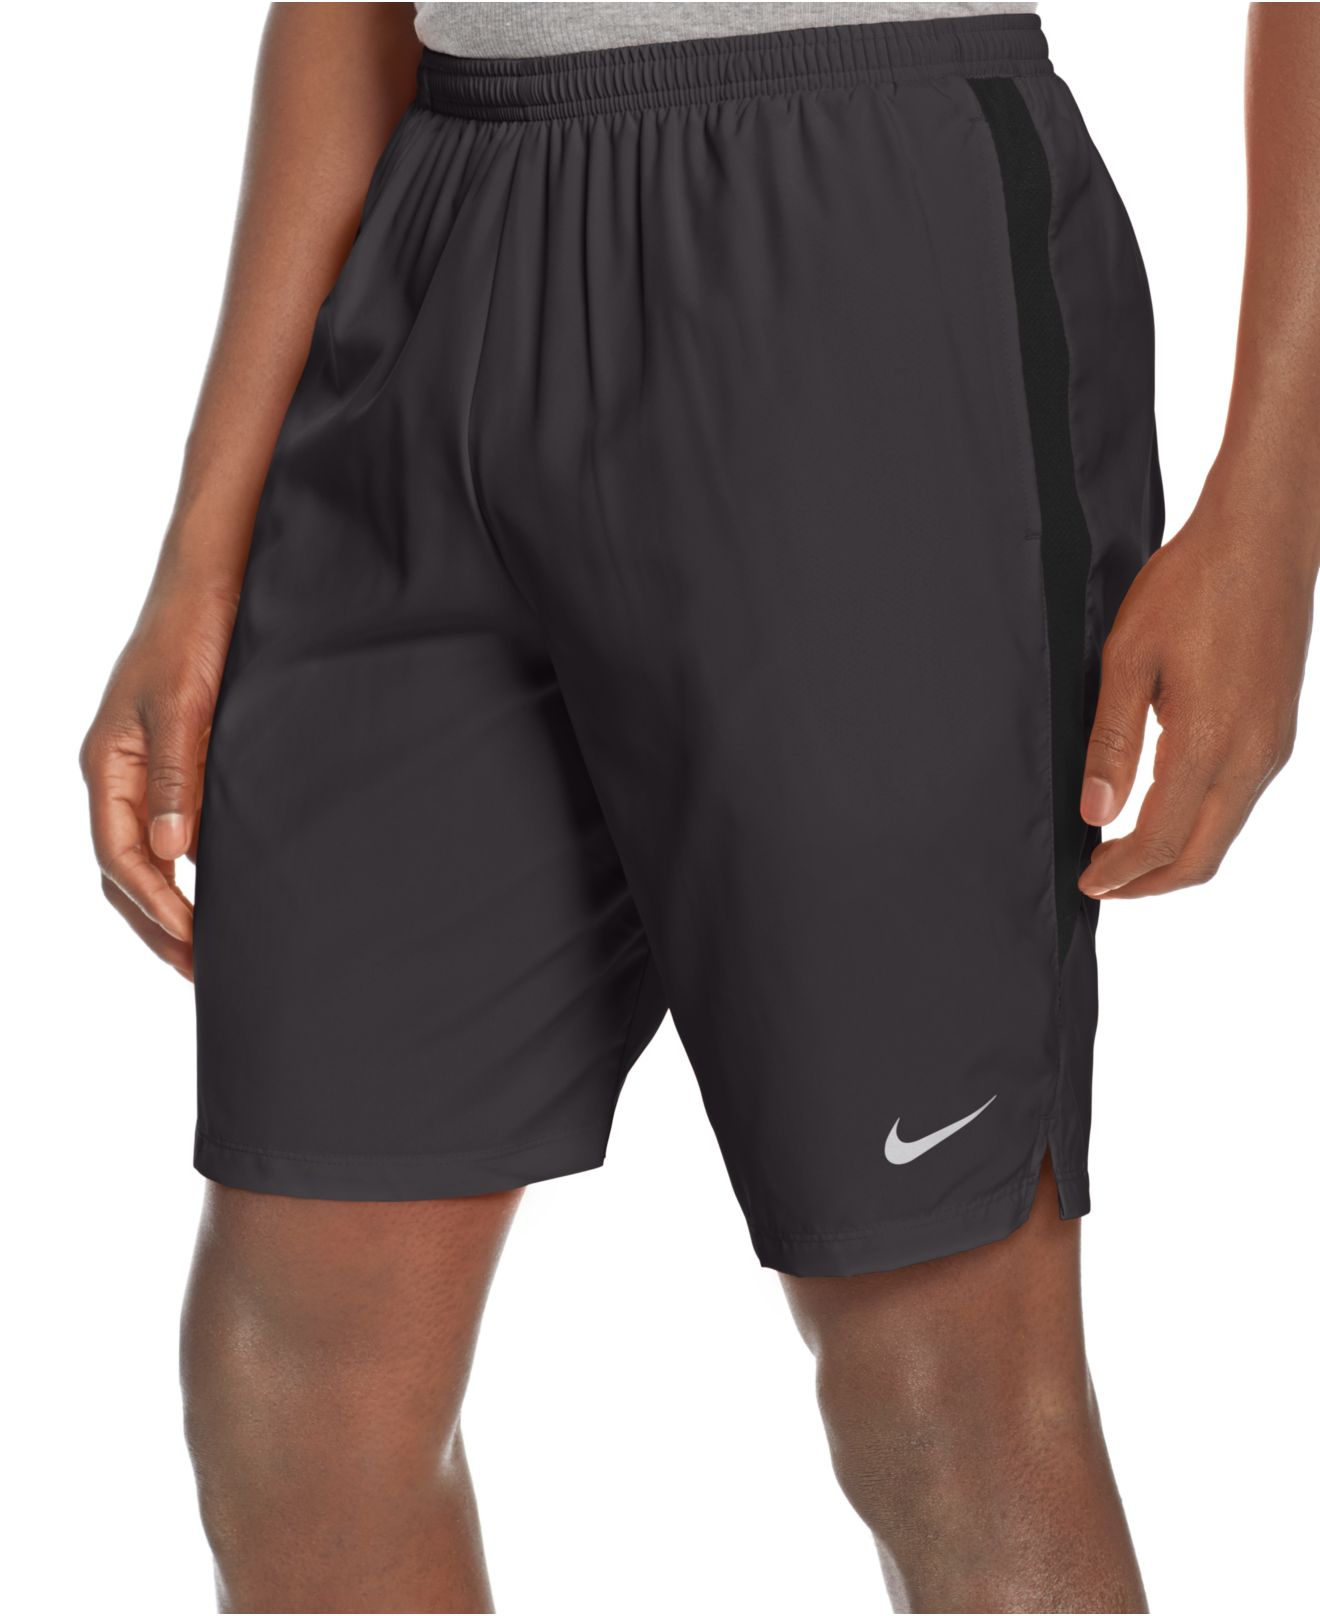 9 Gray Dri Nike Men For Fit Shorts Running Men's In Lyst Challenger qpAxETww6z